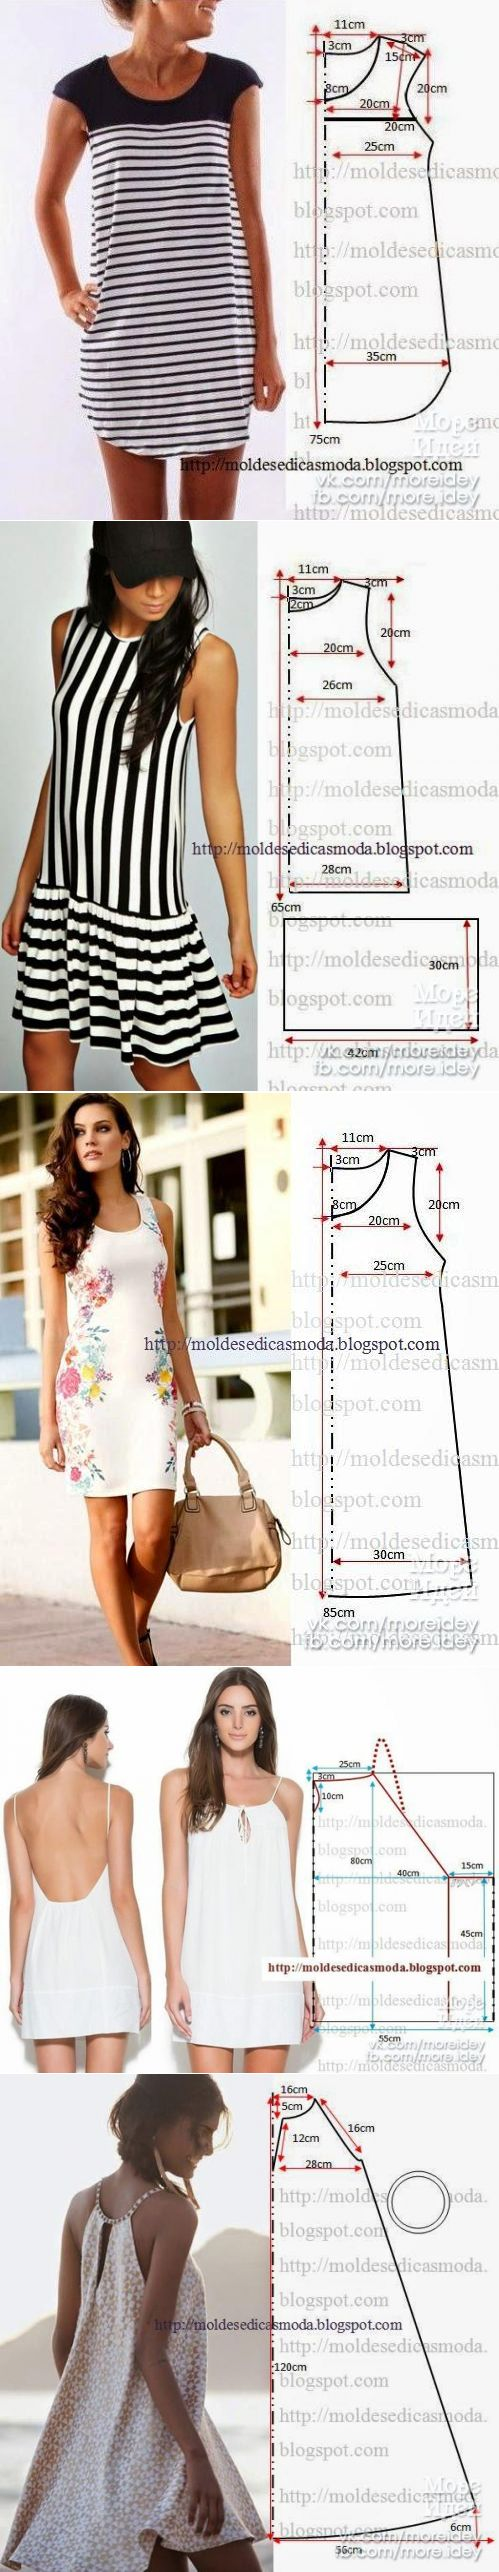 SEW QUICK SUMMER DRESSES! Im a Fan of the Standard Sheath (the possibilities!!) and the Spaghetti Strap versions, How about You?~~https://www.pinterest.cim/bonniebuchanan